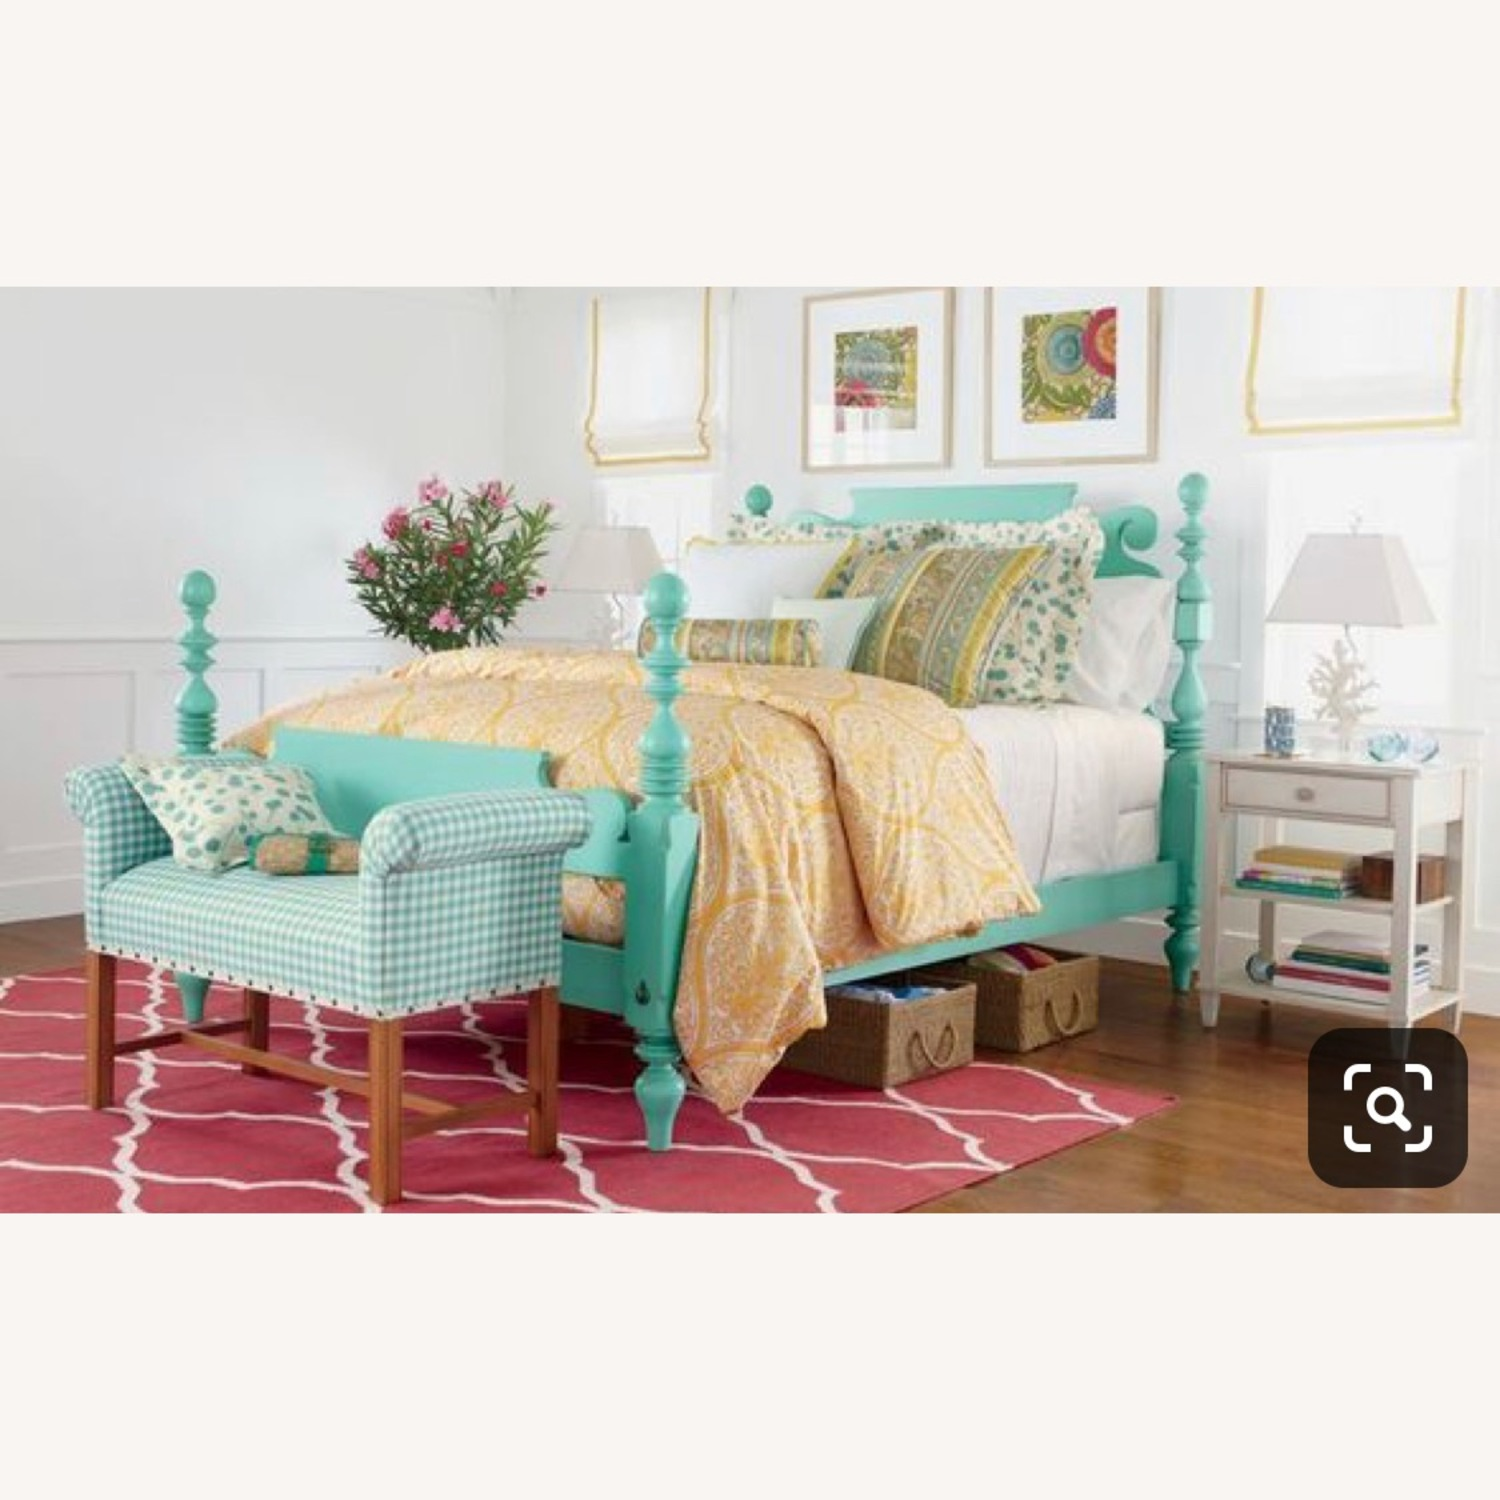 Ethan Allan Queen Size Bed - image-3